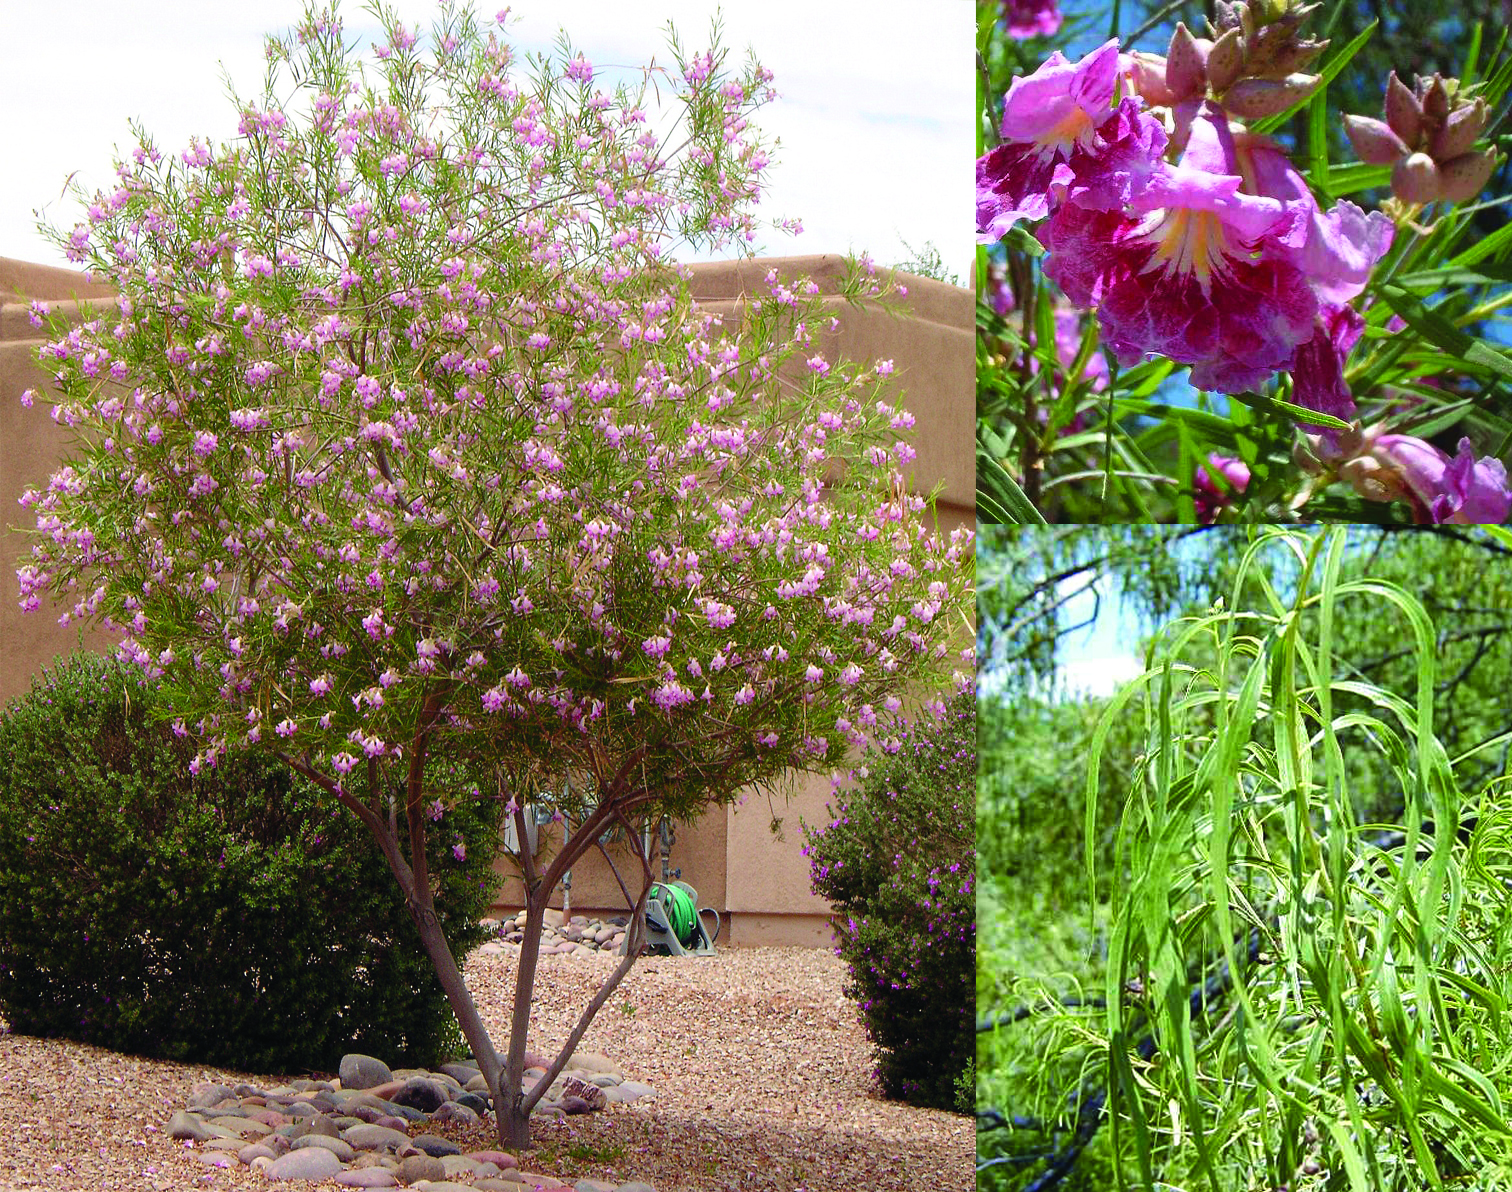 Desert Willow- Chilopsis linearis